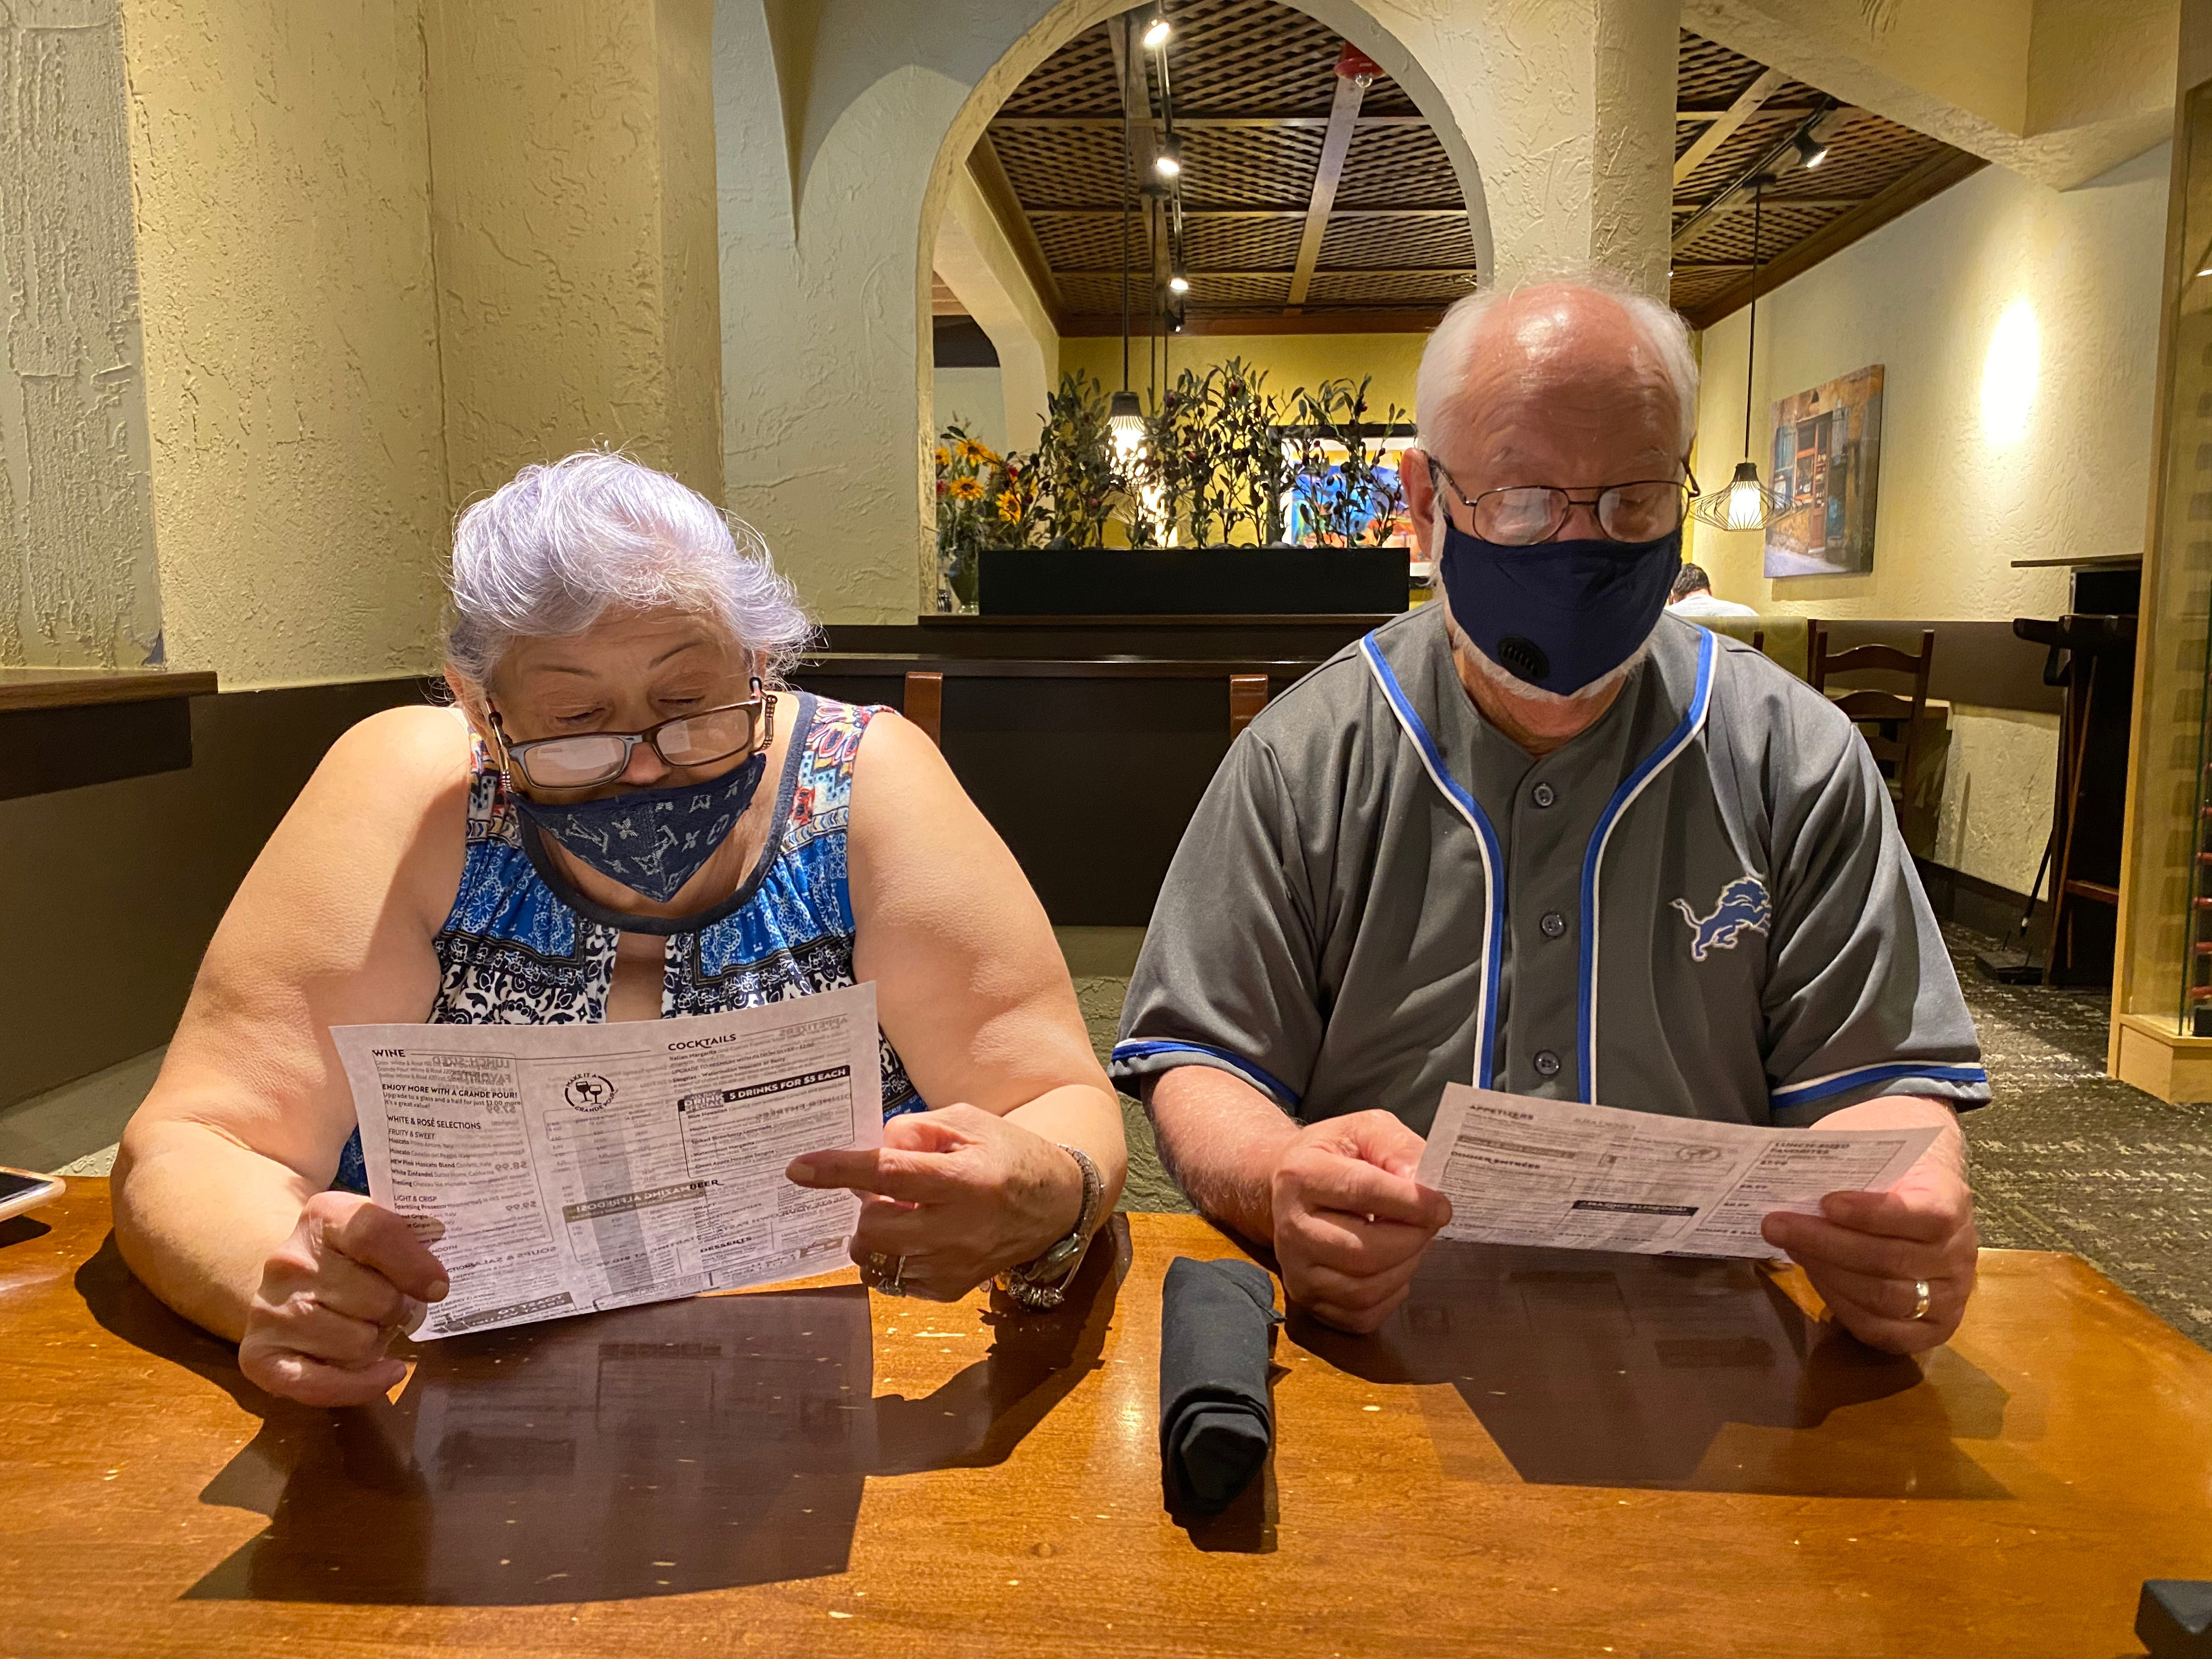 My grandparent's Sanjuana Alvarez and Esau Alvarez, both 67, of Melvindale look at the menu at Olive Garden in Southgate after I took them there because my grandmother wanted to eat pasta on July 18, 2020. Since the coronavirus pandemic a lot of things changed to keep people safe. We were wearing masks, seated apart from other people, three to four tables apart and were given paper menus. This feels so different than before the pandemic.